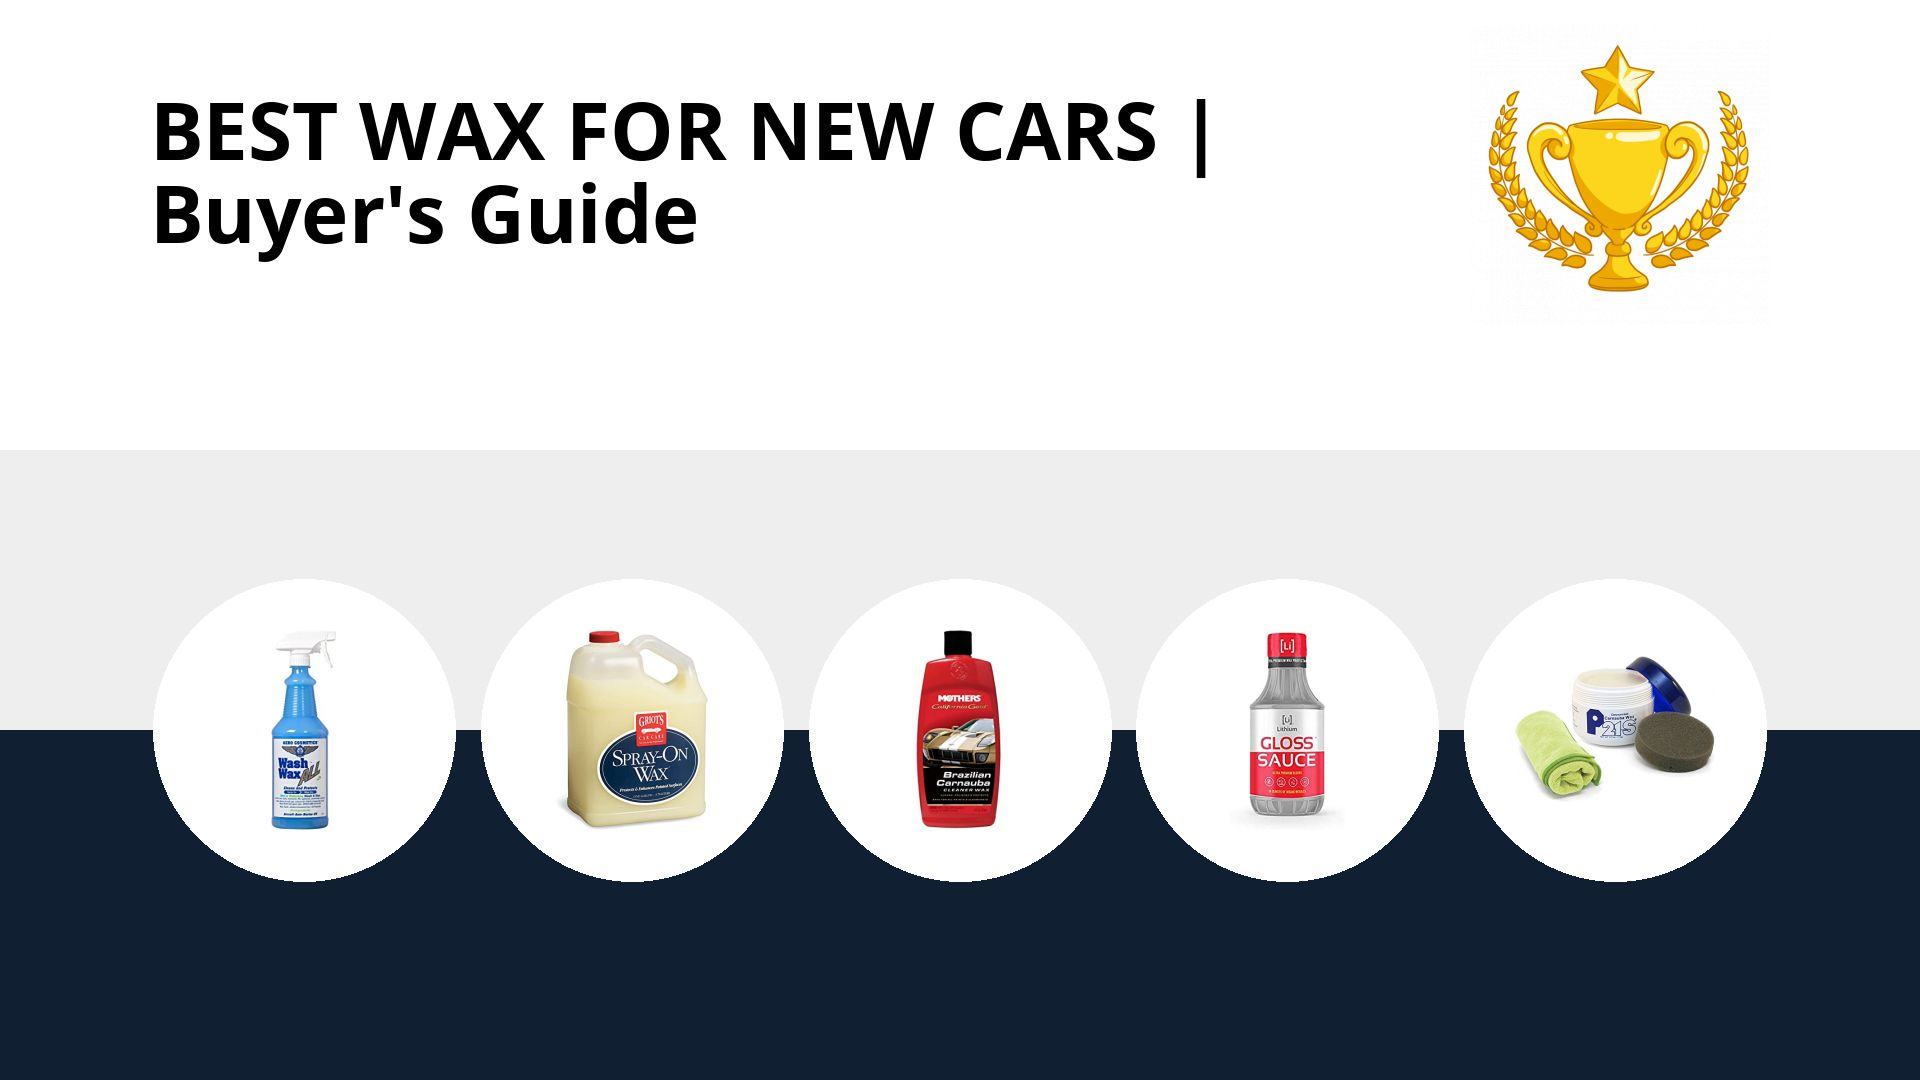 Best Wax For New Cars: image